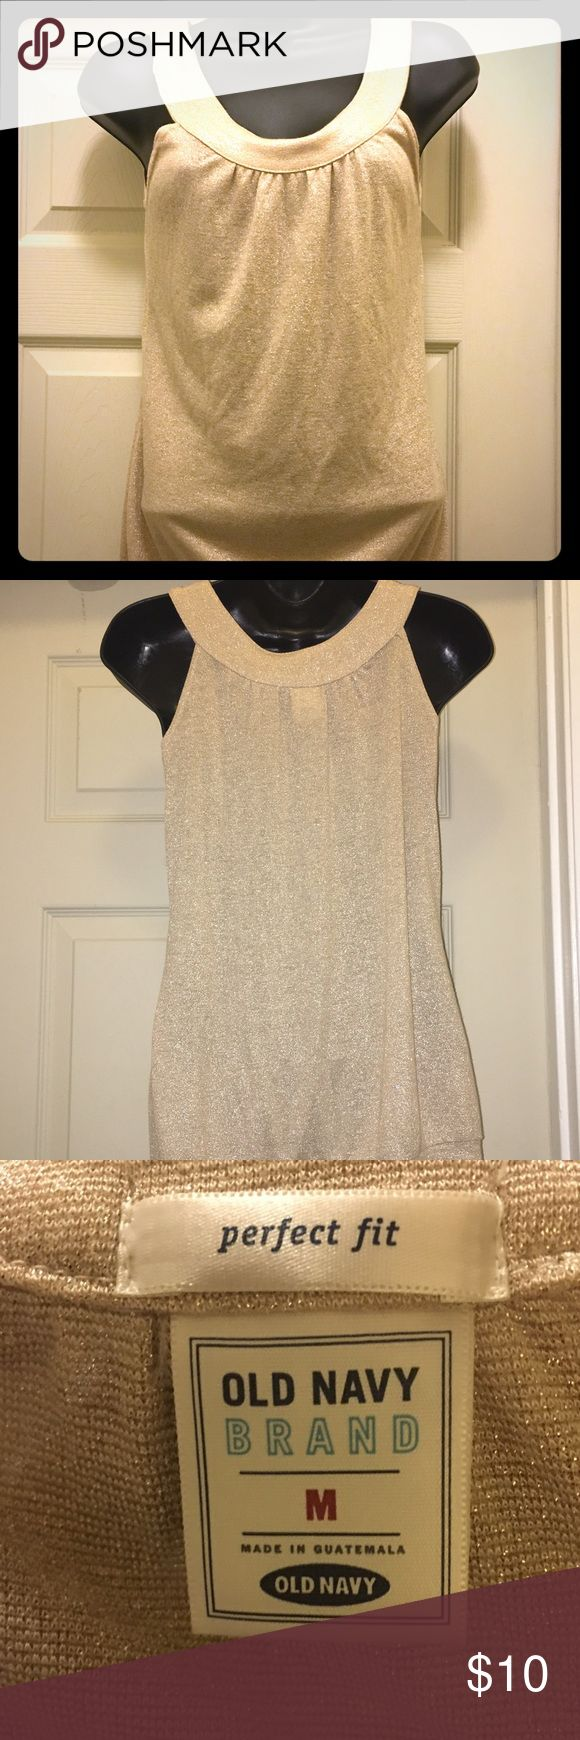 Old navy medium gold tang top Gold glittery tang top nice for a night out size medium Old Navy Tops Tank Tops